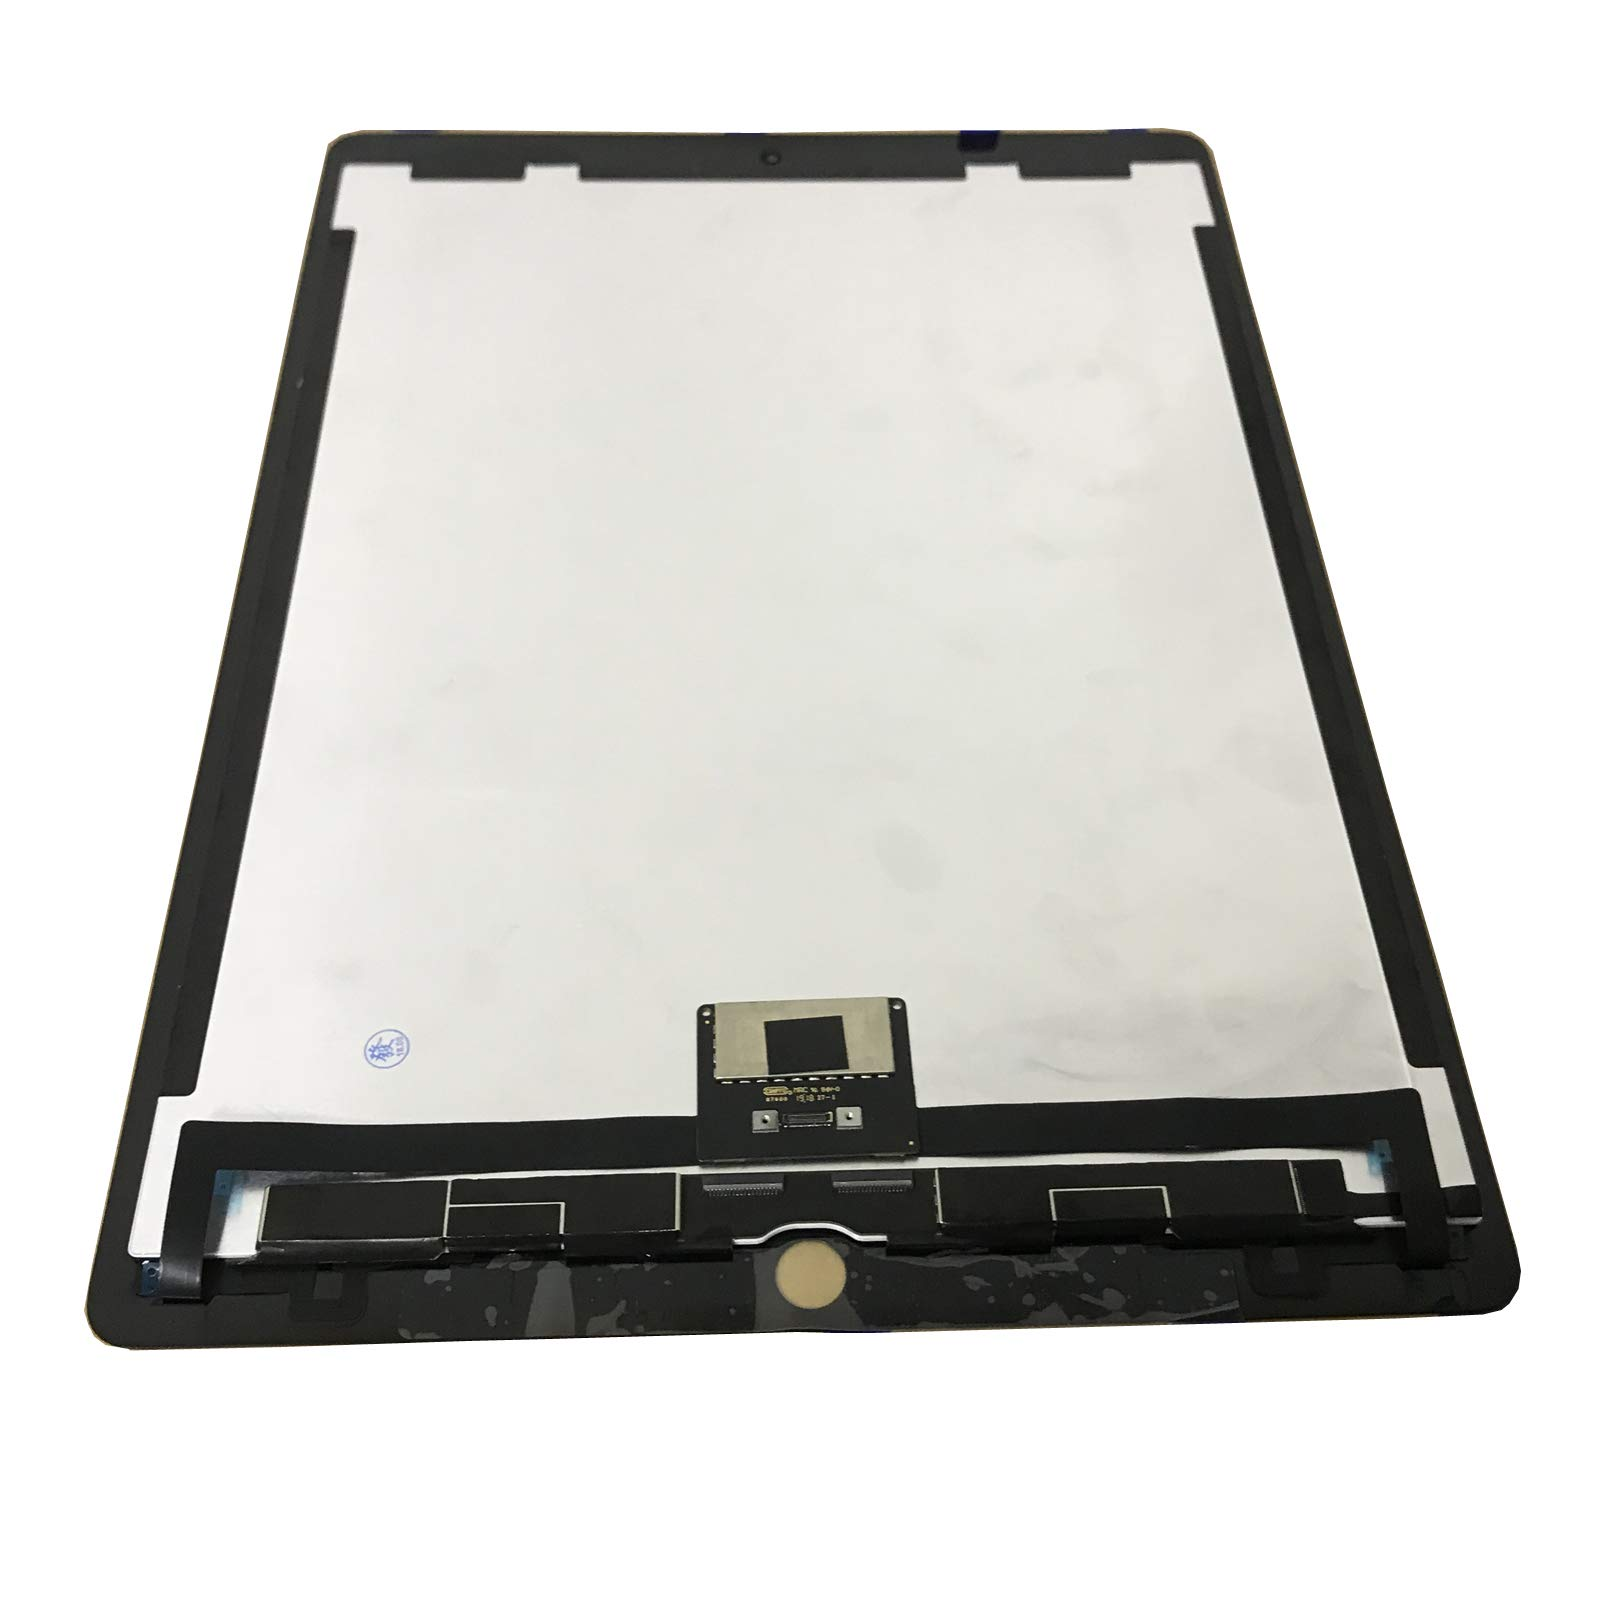 LCD Screen Touch Digitizer LED Display Panel Assembly for iPad Pro 2nd Gen A1670 A1671 with IC Chip